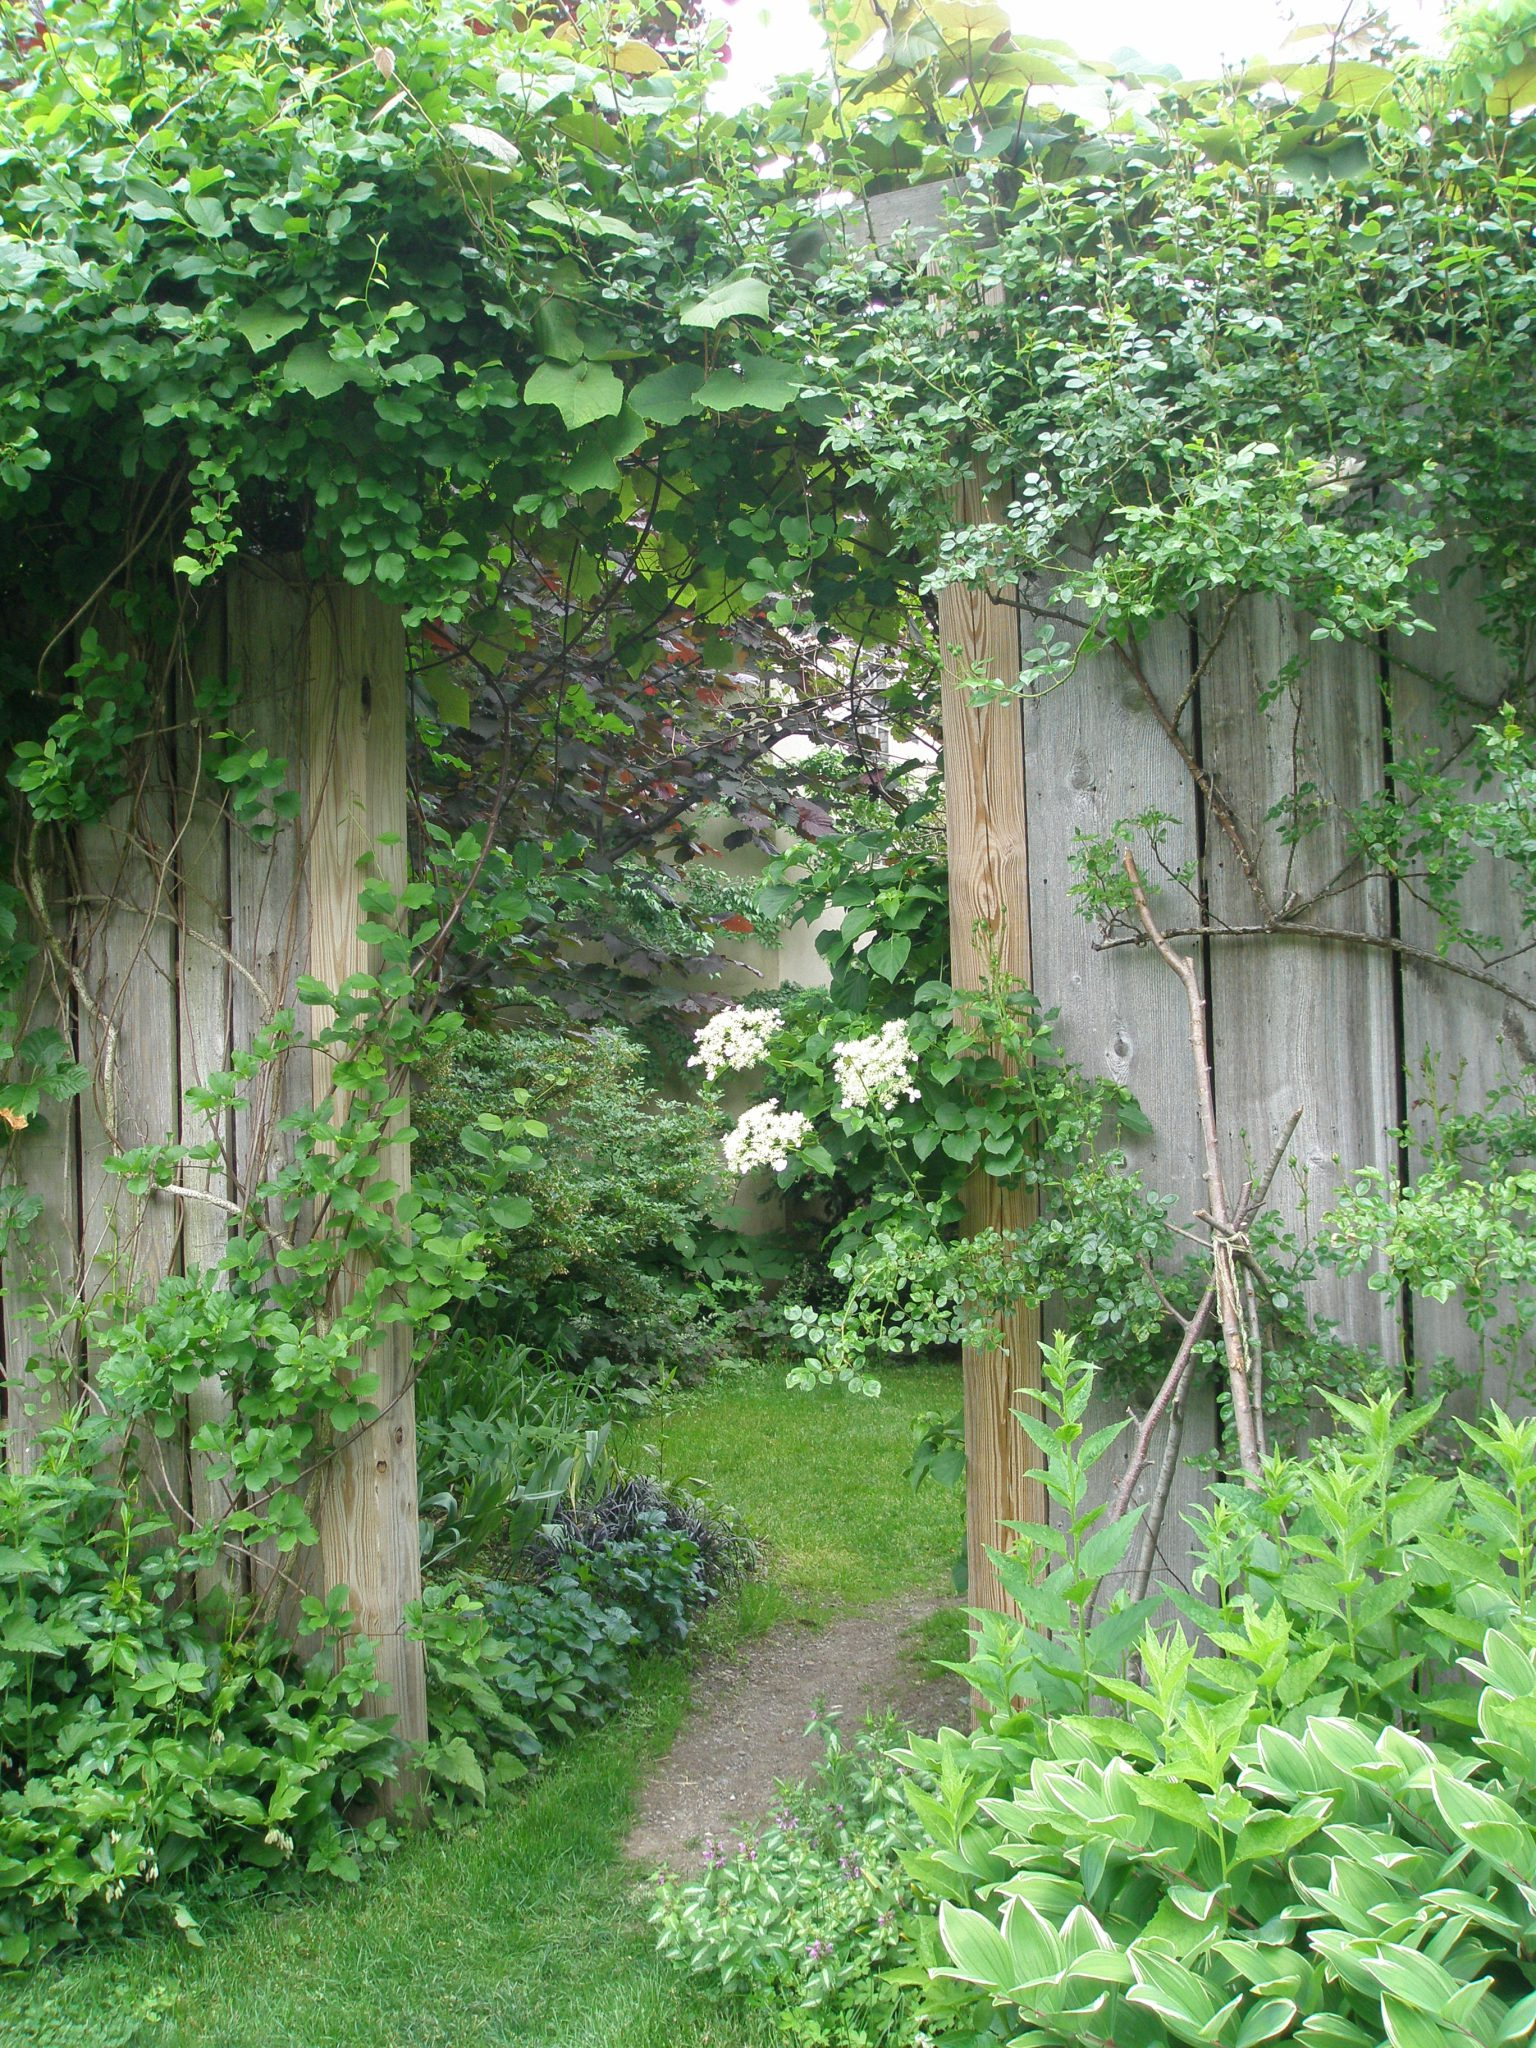 Another Entry Gate to the Enclosed Flower Garden